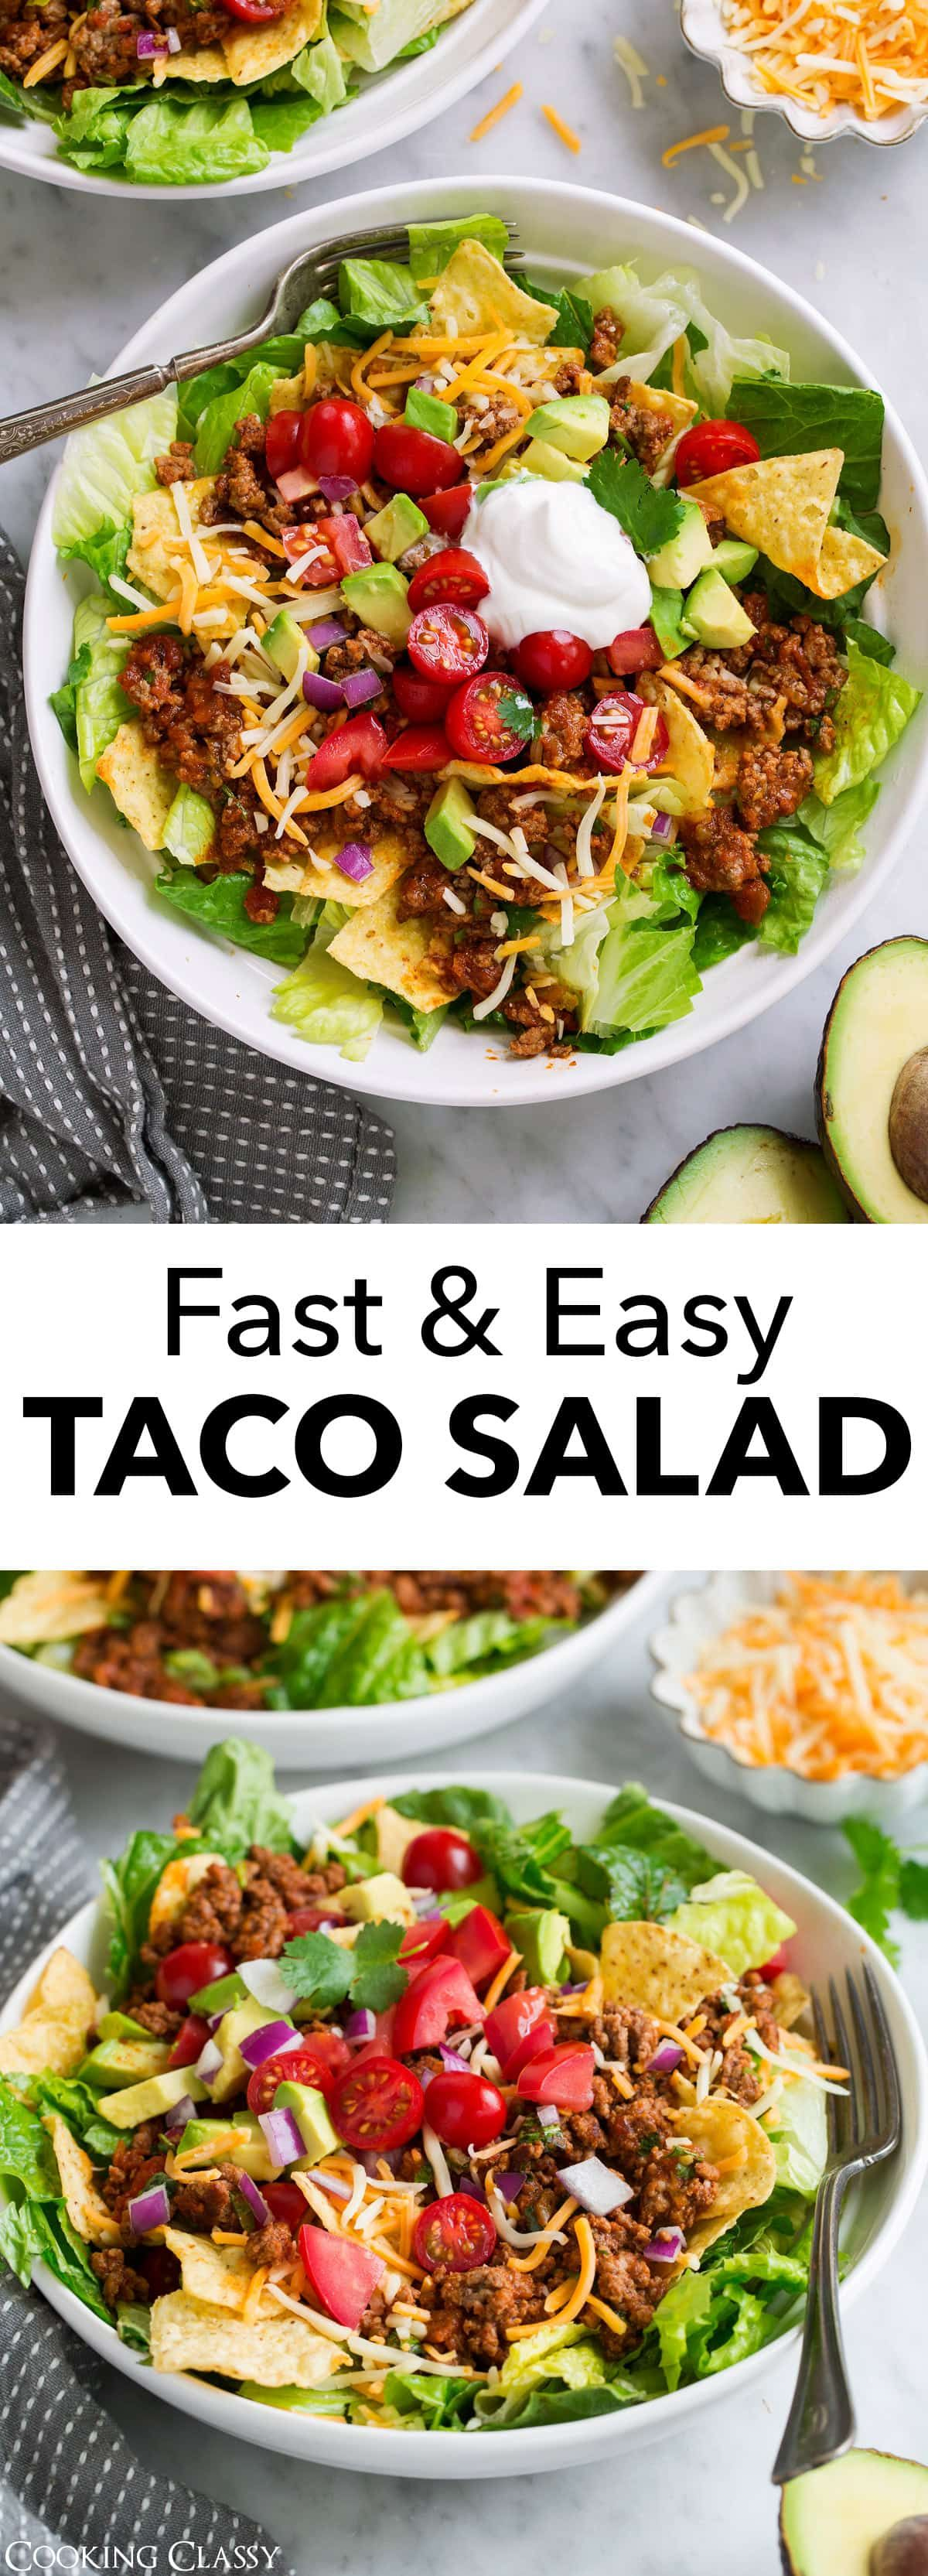 Taco Salad - this is quick, flavorful, hearty, a total breeze to make and it's a dinner everyone can agree on both young and old alike! It doesn't take much to make a satisfying meal and this simple salad is proof of that. This is a back pocket recipe you'll want to make on repeat! #easy #quick #tacosalad #beef #groundbeef #avocado #mexican #recipe #dinner #food